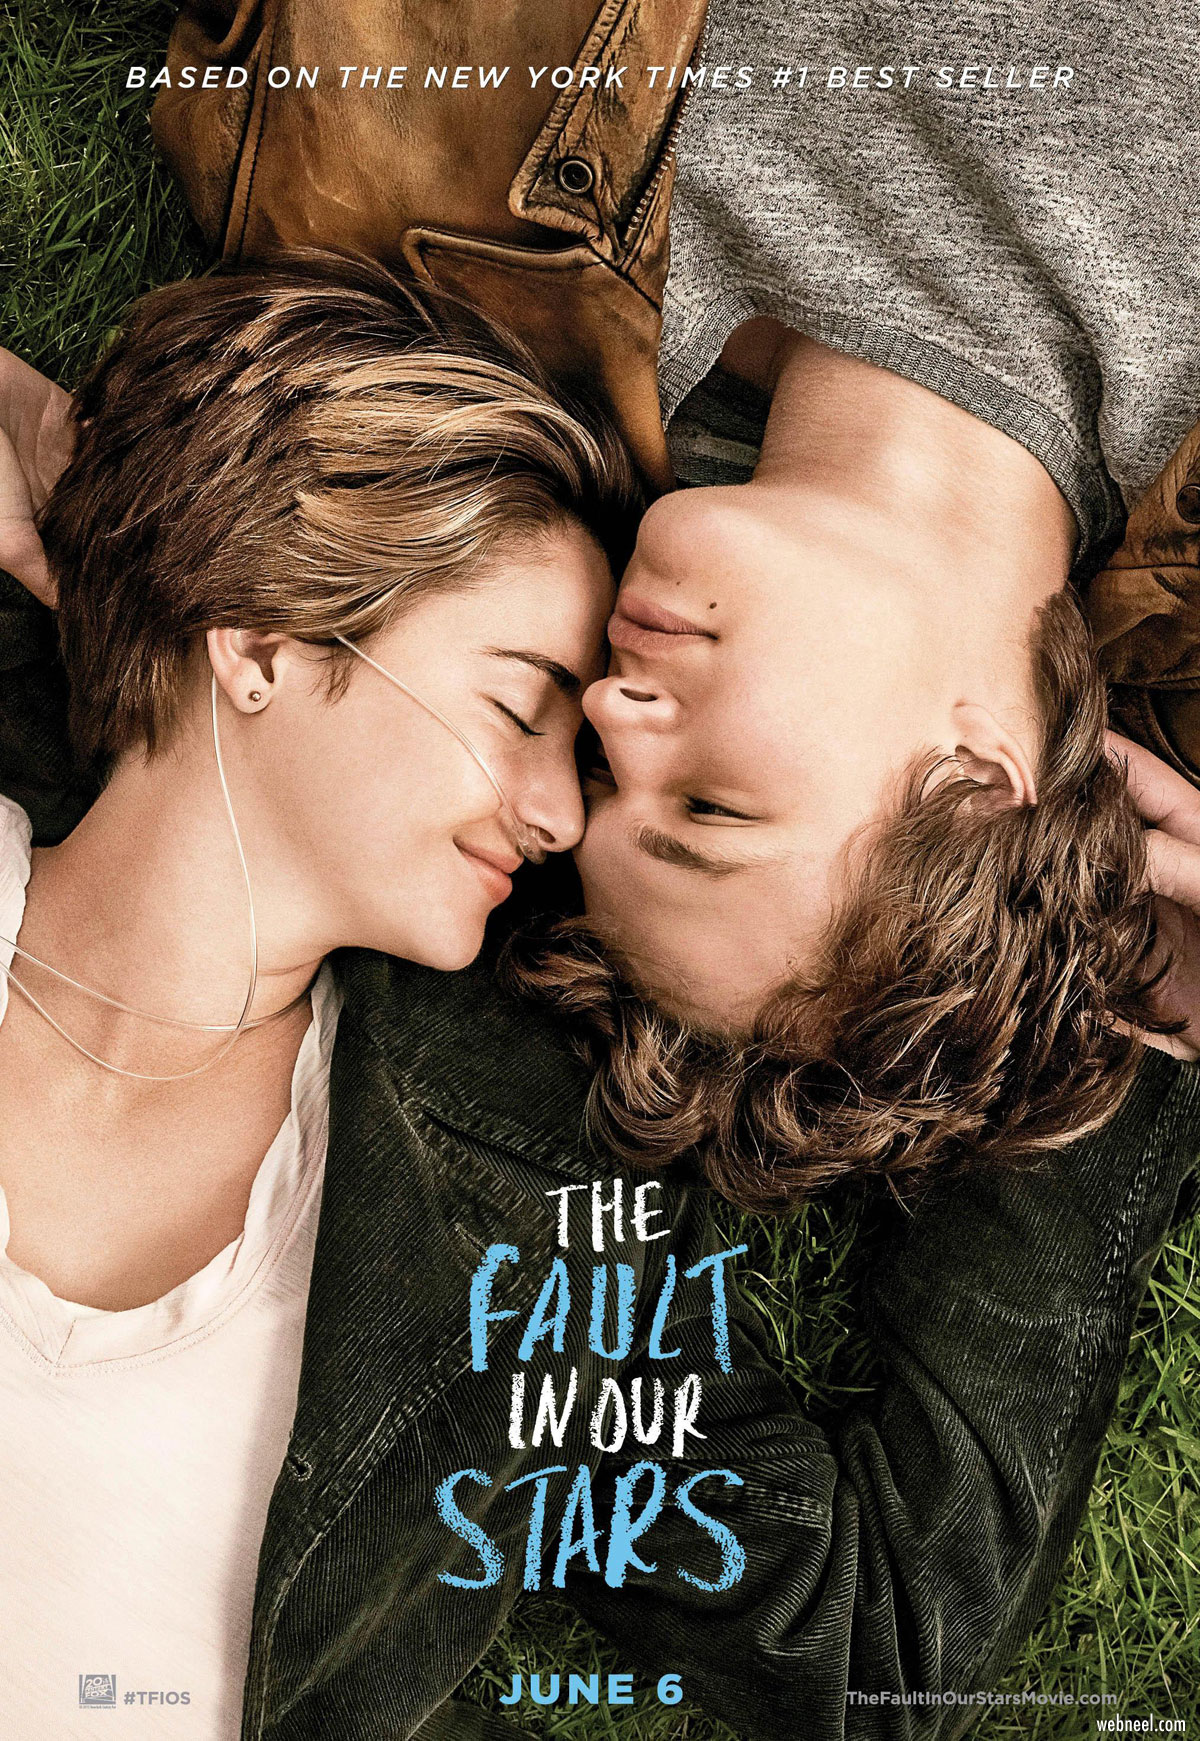 movie poster design fault in our stars relationship